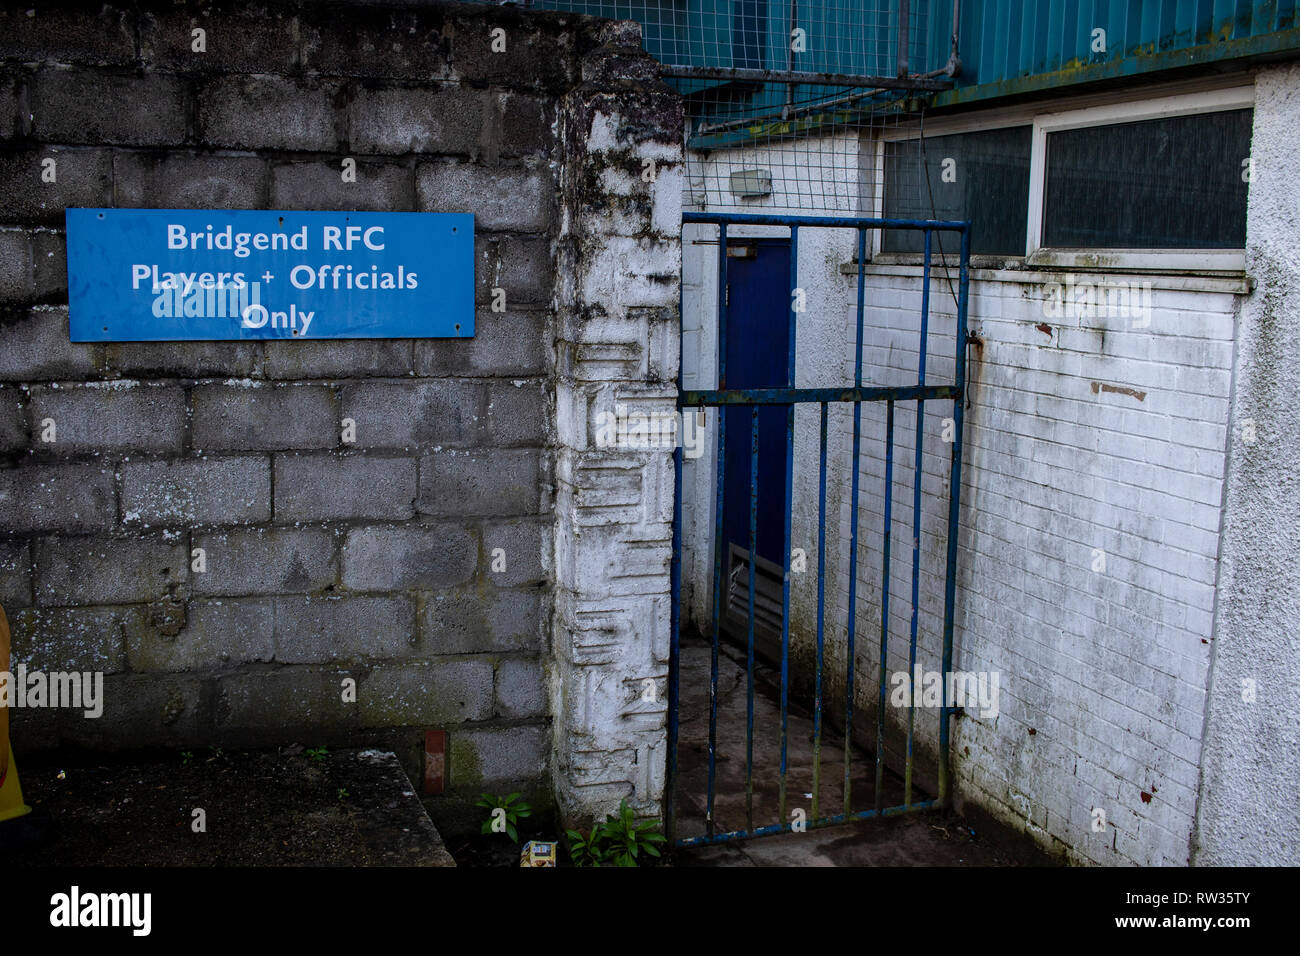 General View of the Brewery Field, home to Bridgend Ravens RFC. - Stock Image